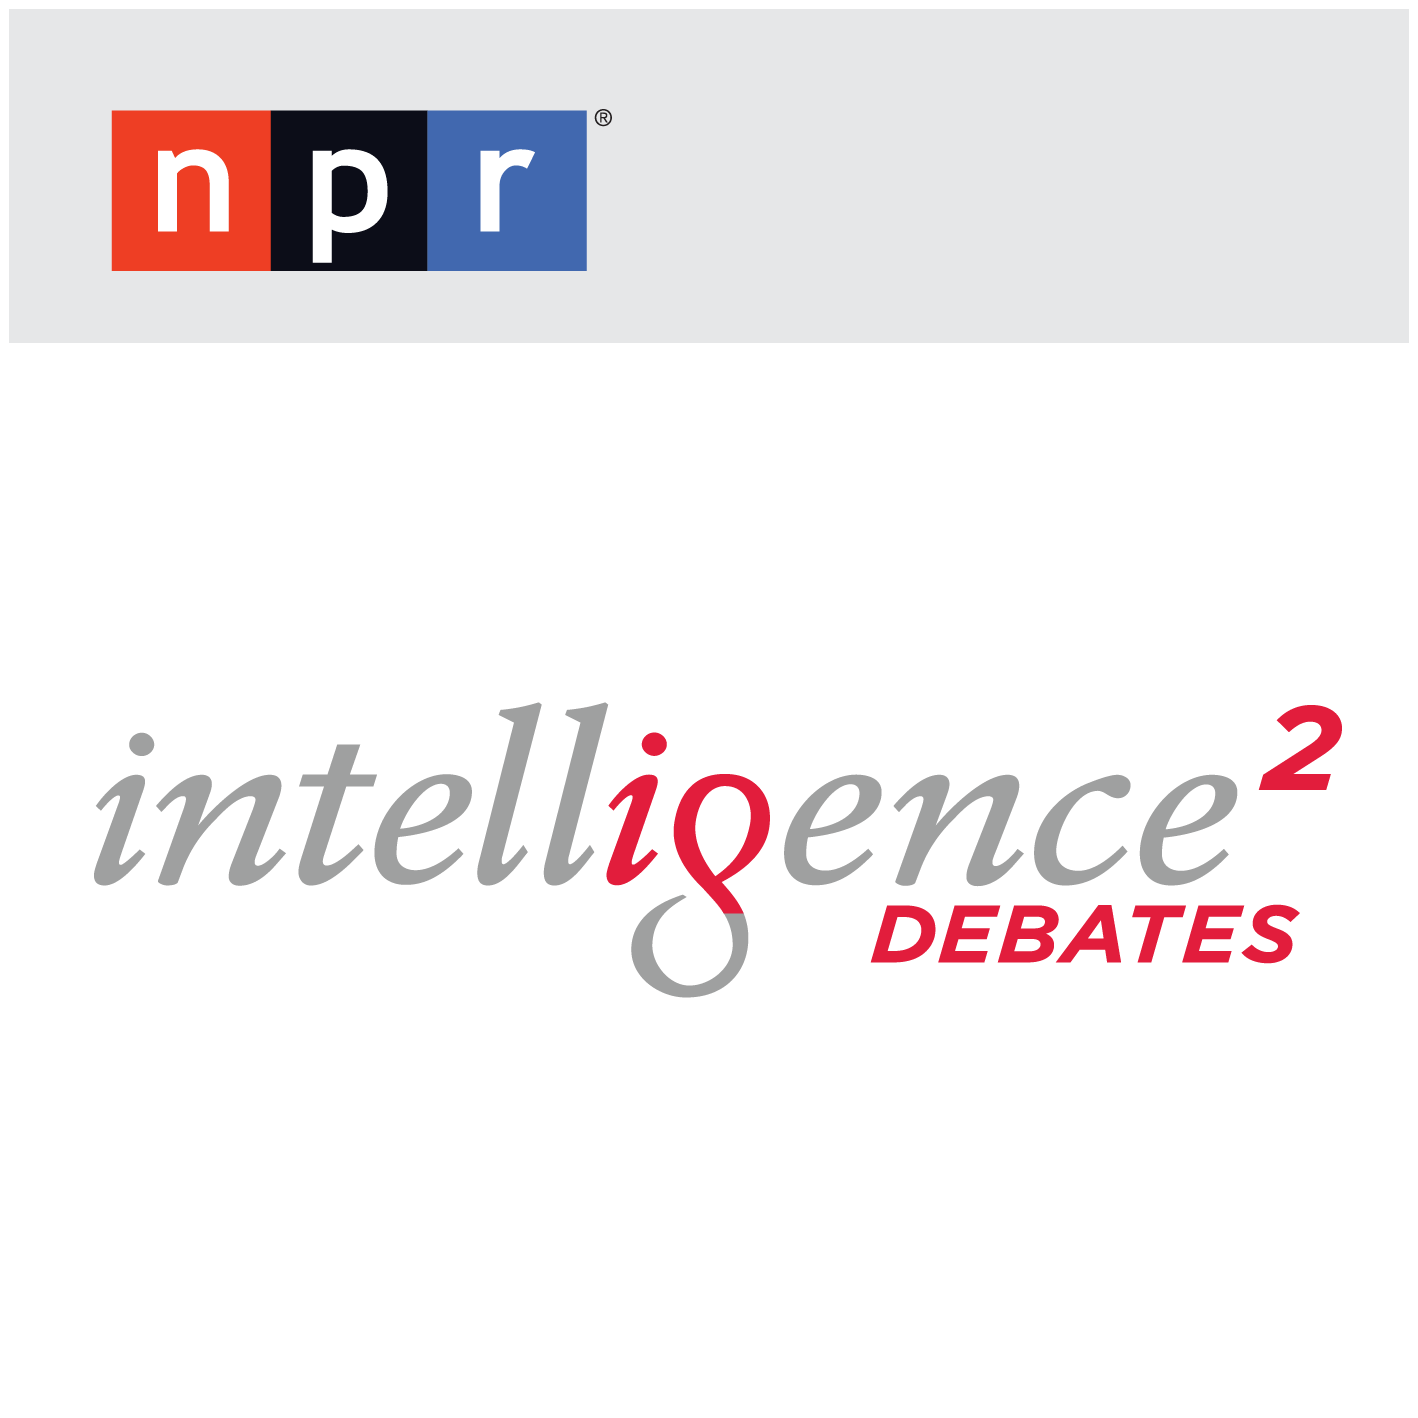 NPR: Intelligence Squared U.S. Debates Podcast